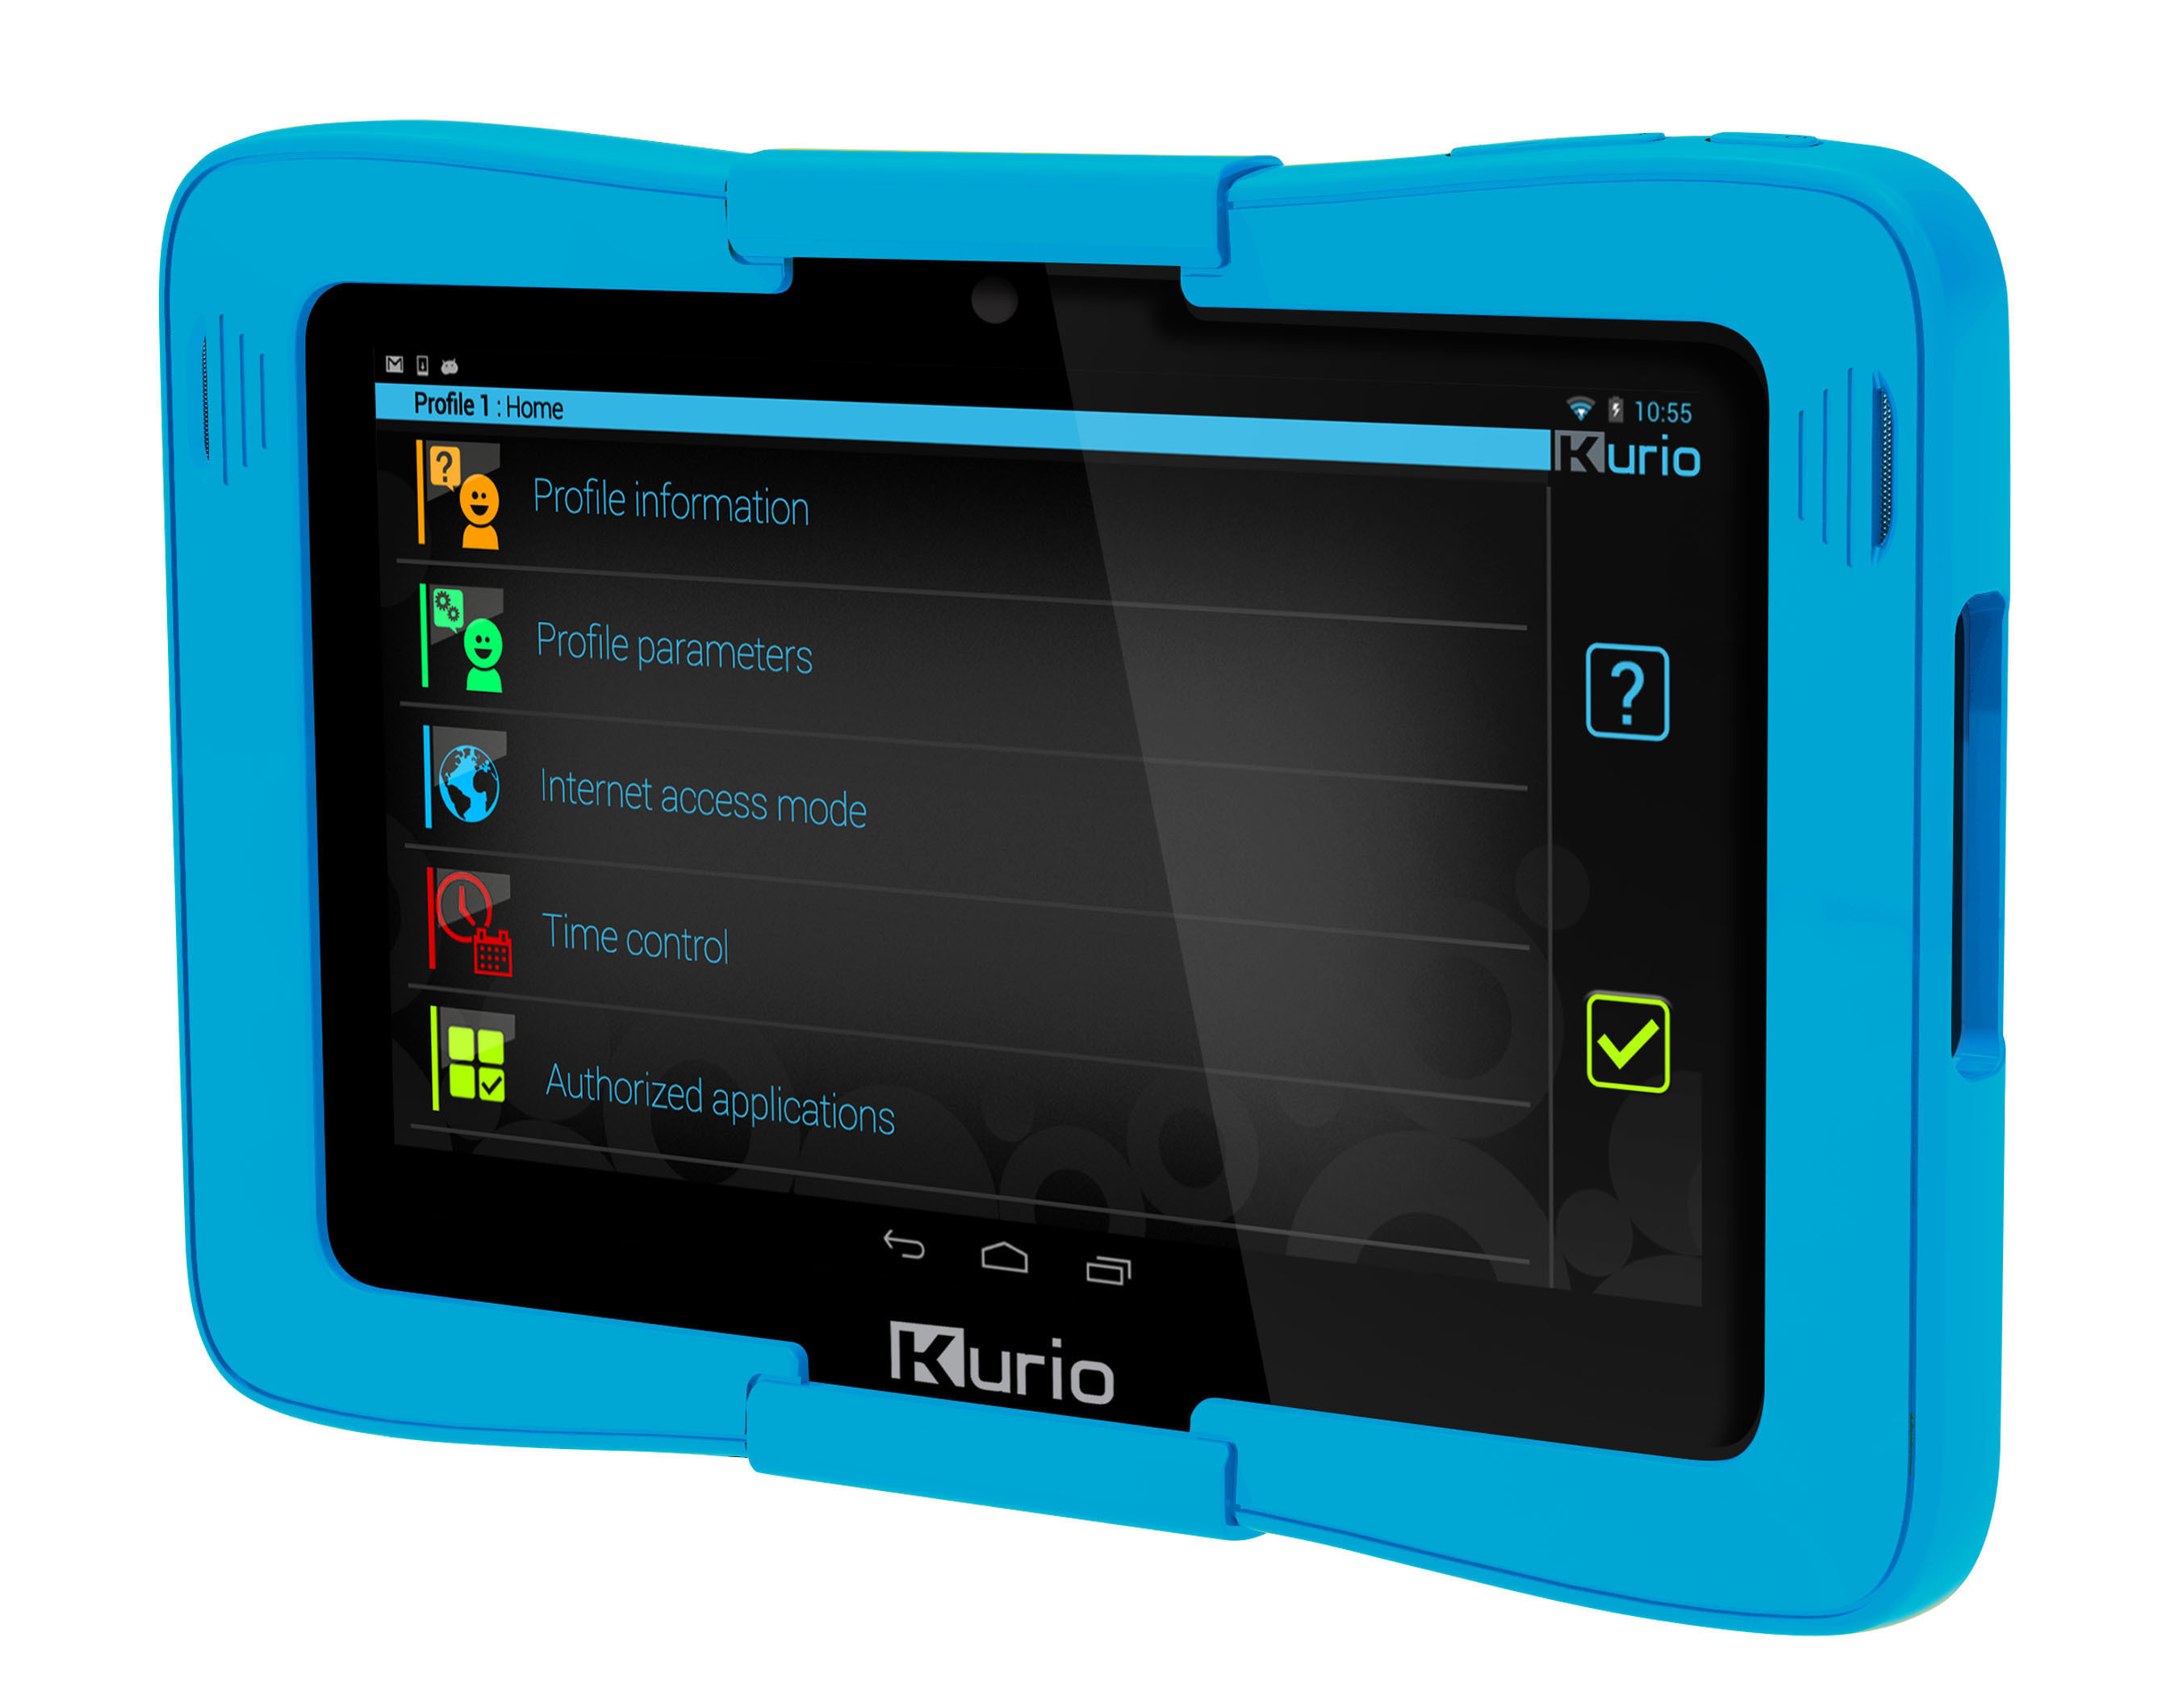 Techno Source Unveils New Kurio Line Of Android Devices For Families With Kids